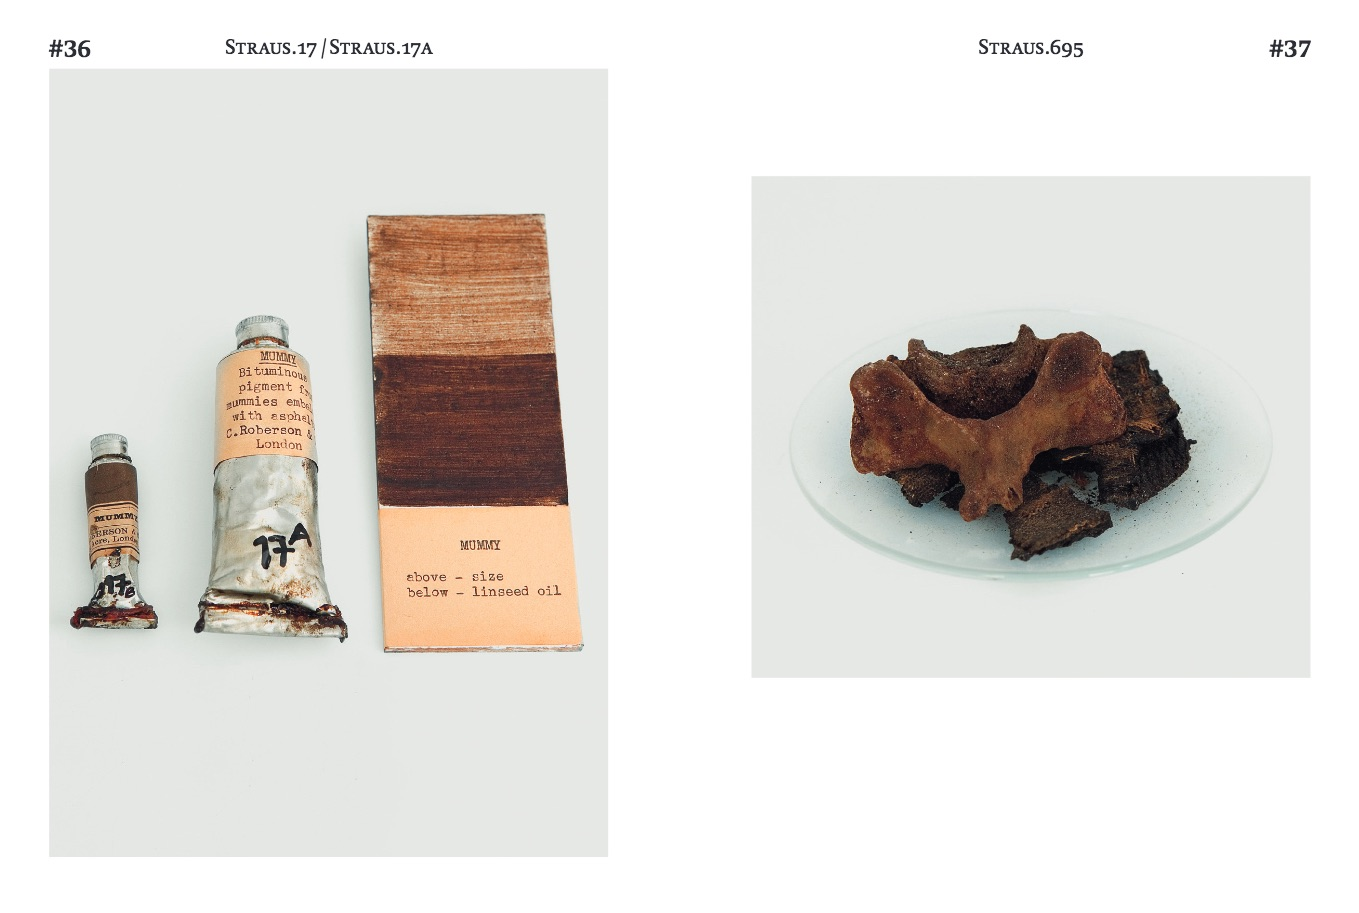 An excerpt from Khandekar's 2017 book, Collecting Colour, published by the Sikkens Foundation and ArtEZ Press. (left) two tubes of Mummy and painted swatches, manufactured by Charles Roberson and Co.; (right) part of a mummy used to make paint, most likely supplied by Charles Roberson and Co